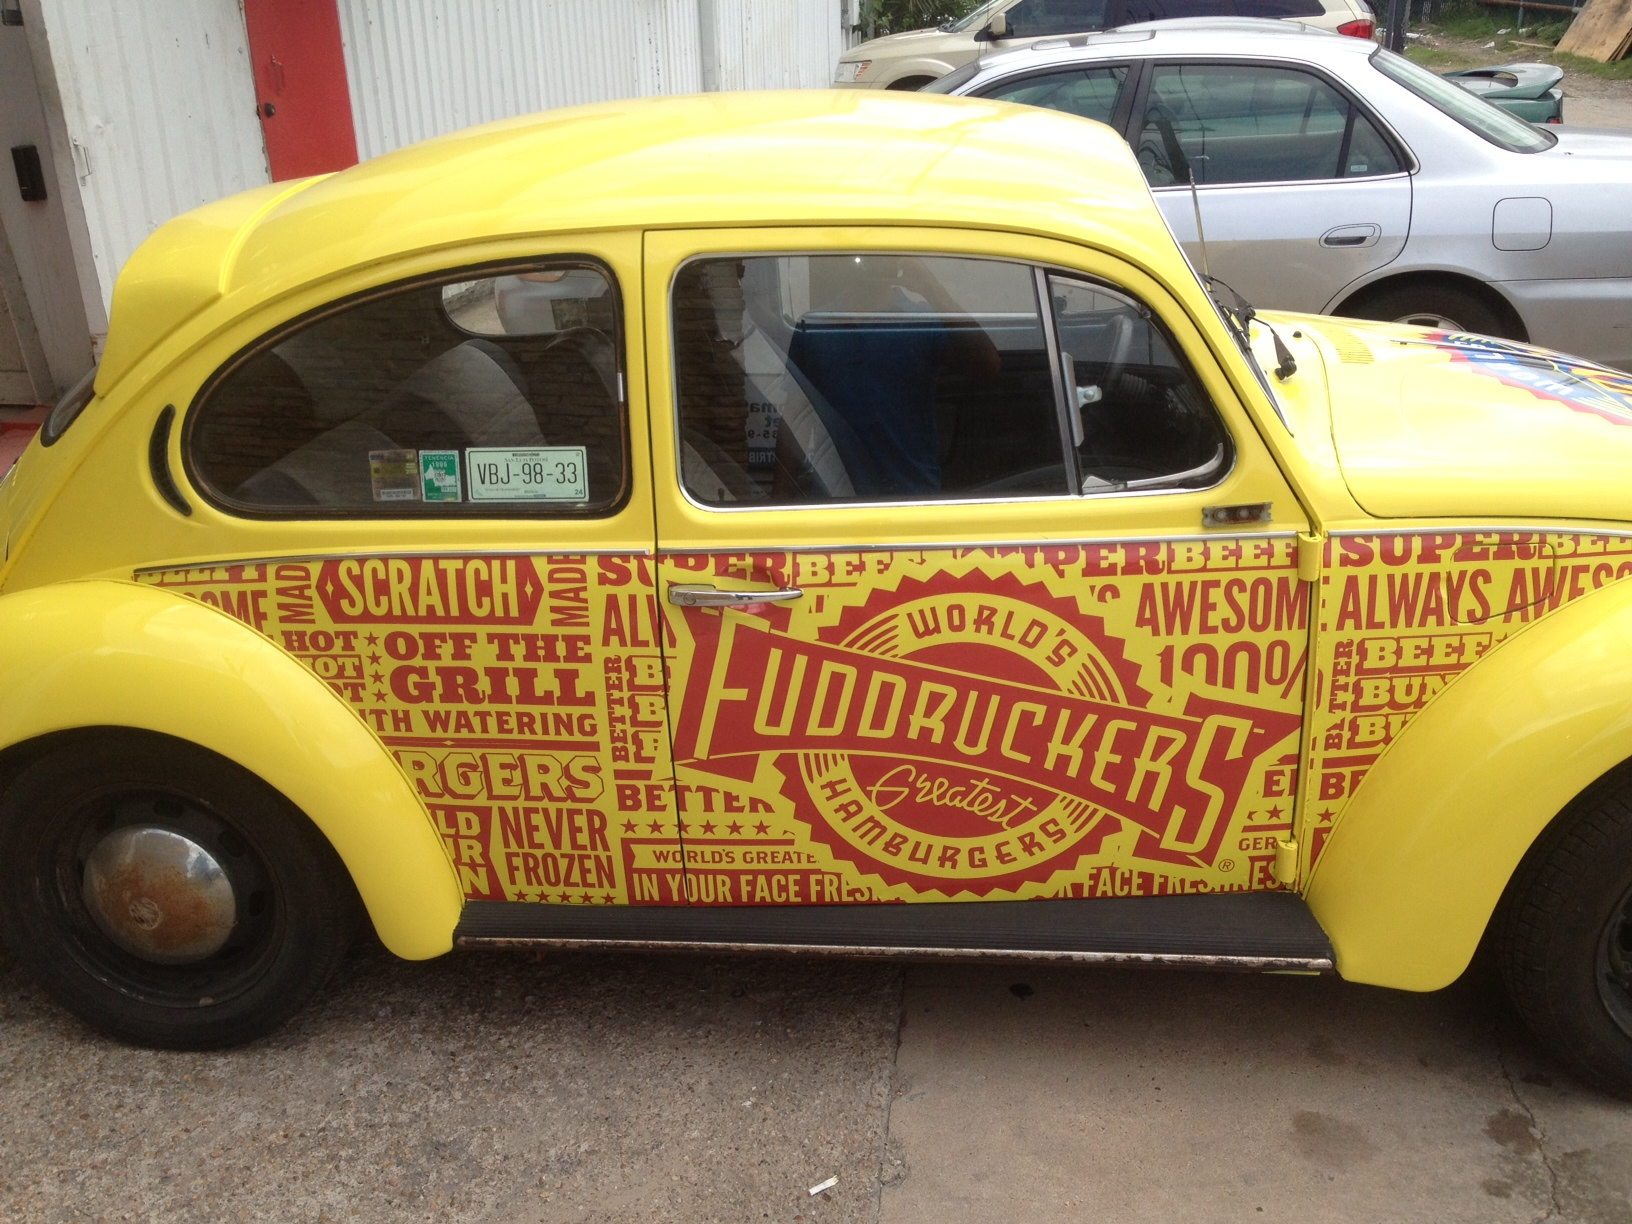 Fuddruckers Bettlebug Car